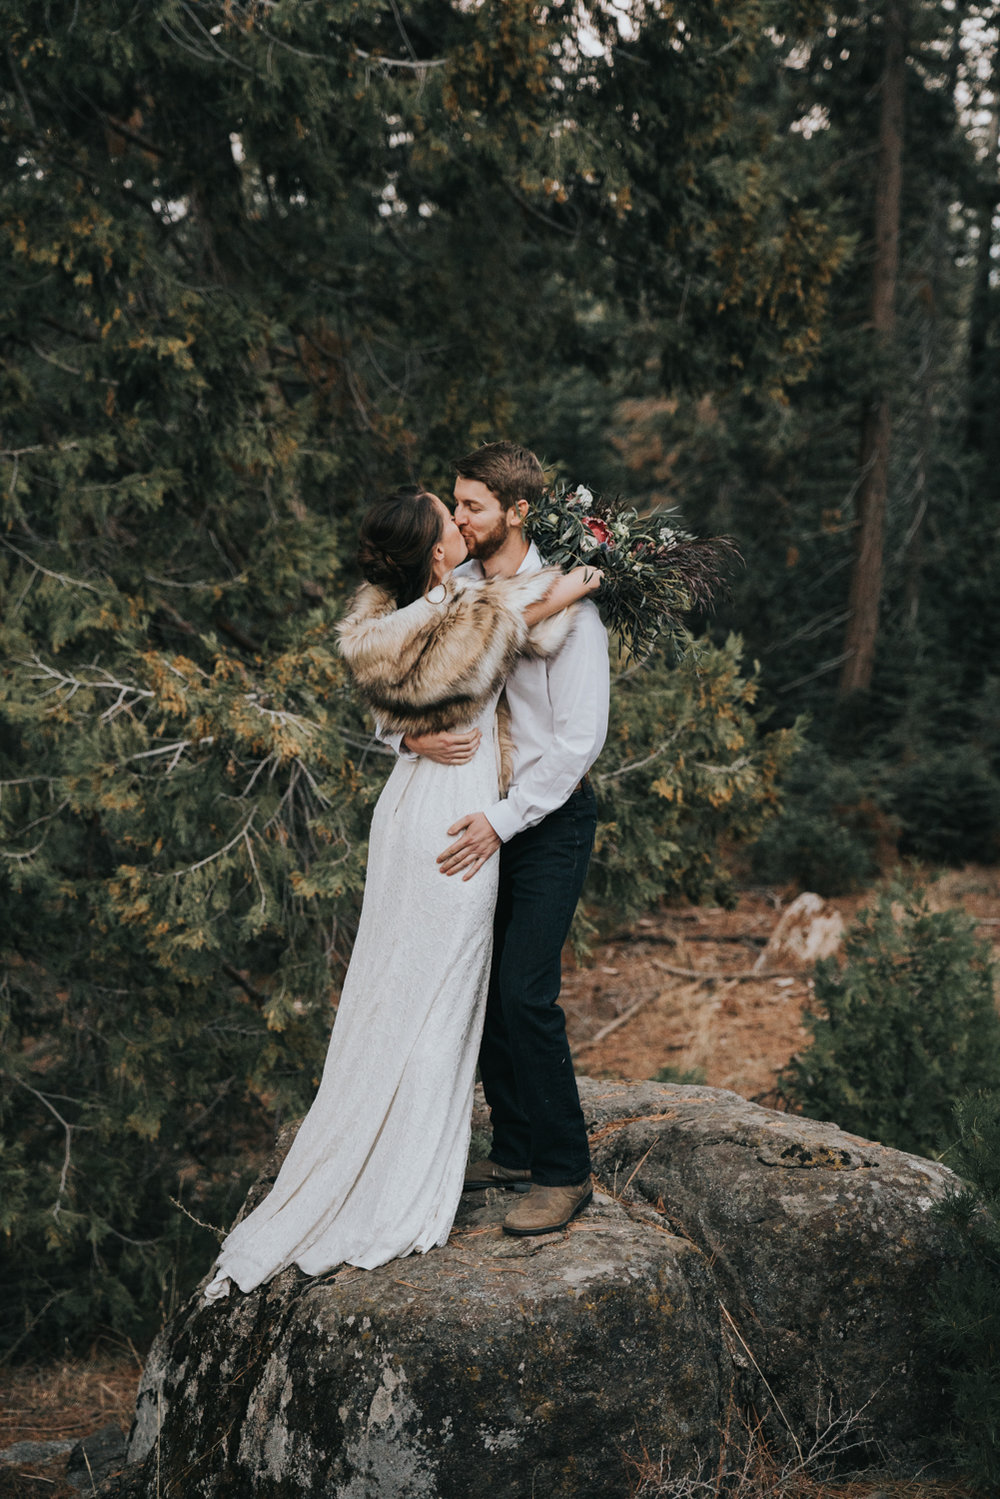 Mountain Elopement in Shaver Lake California by Bessie Young Photography Wild Elopement - Adventure Elopement-180.jpg